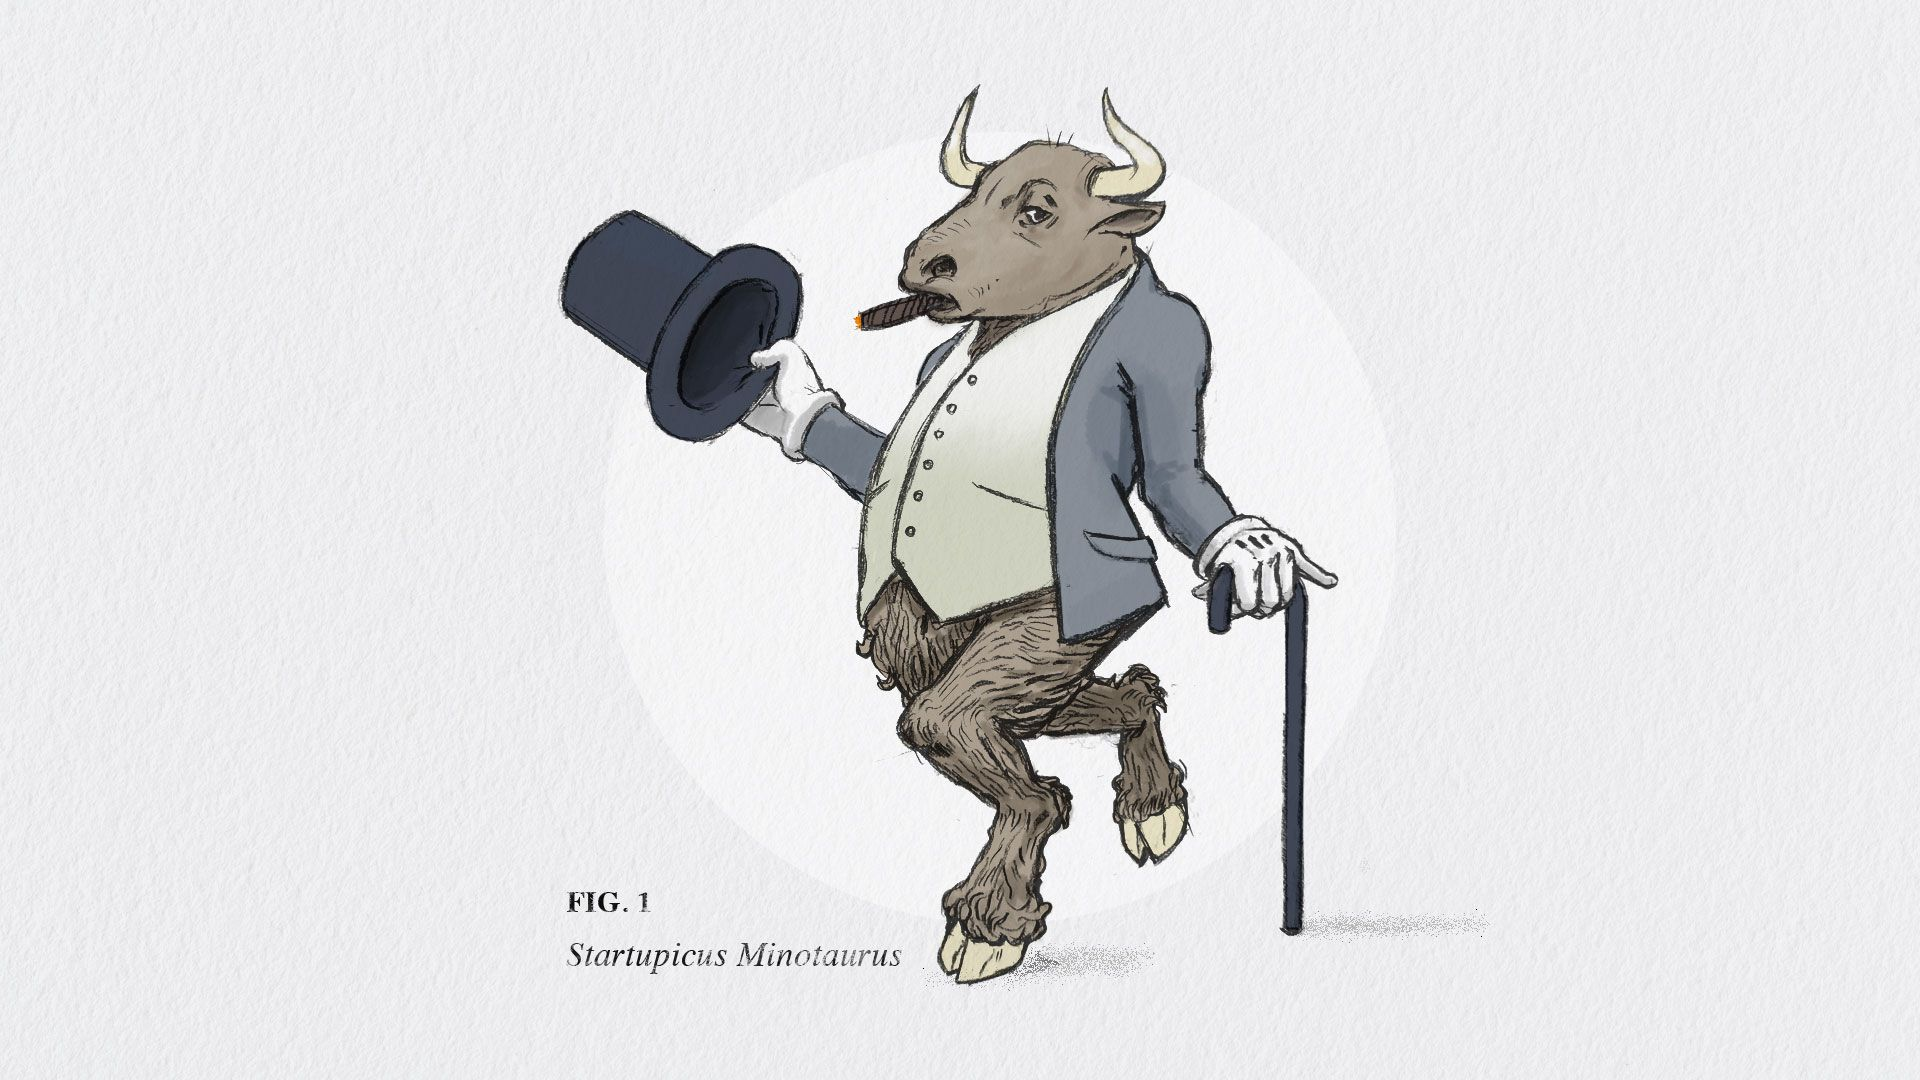 A fancy minotaur with a cane and top hat